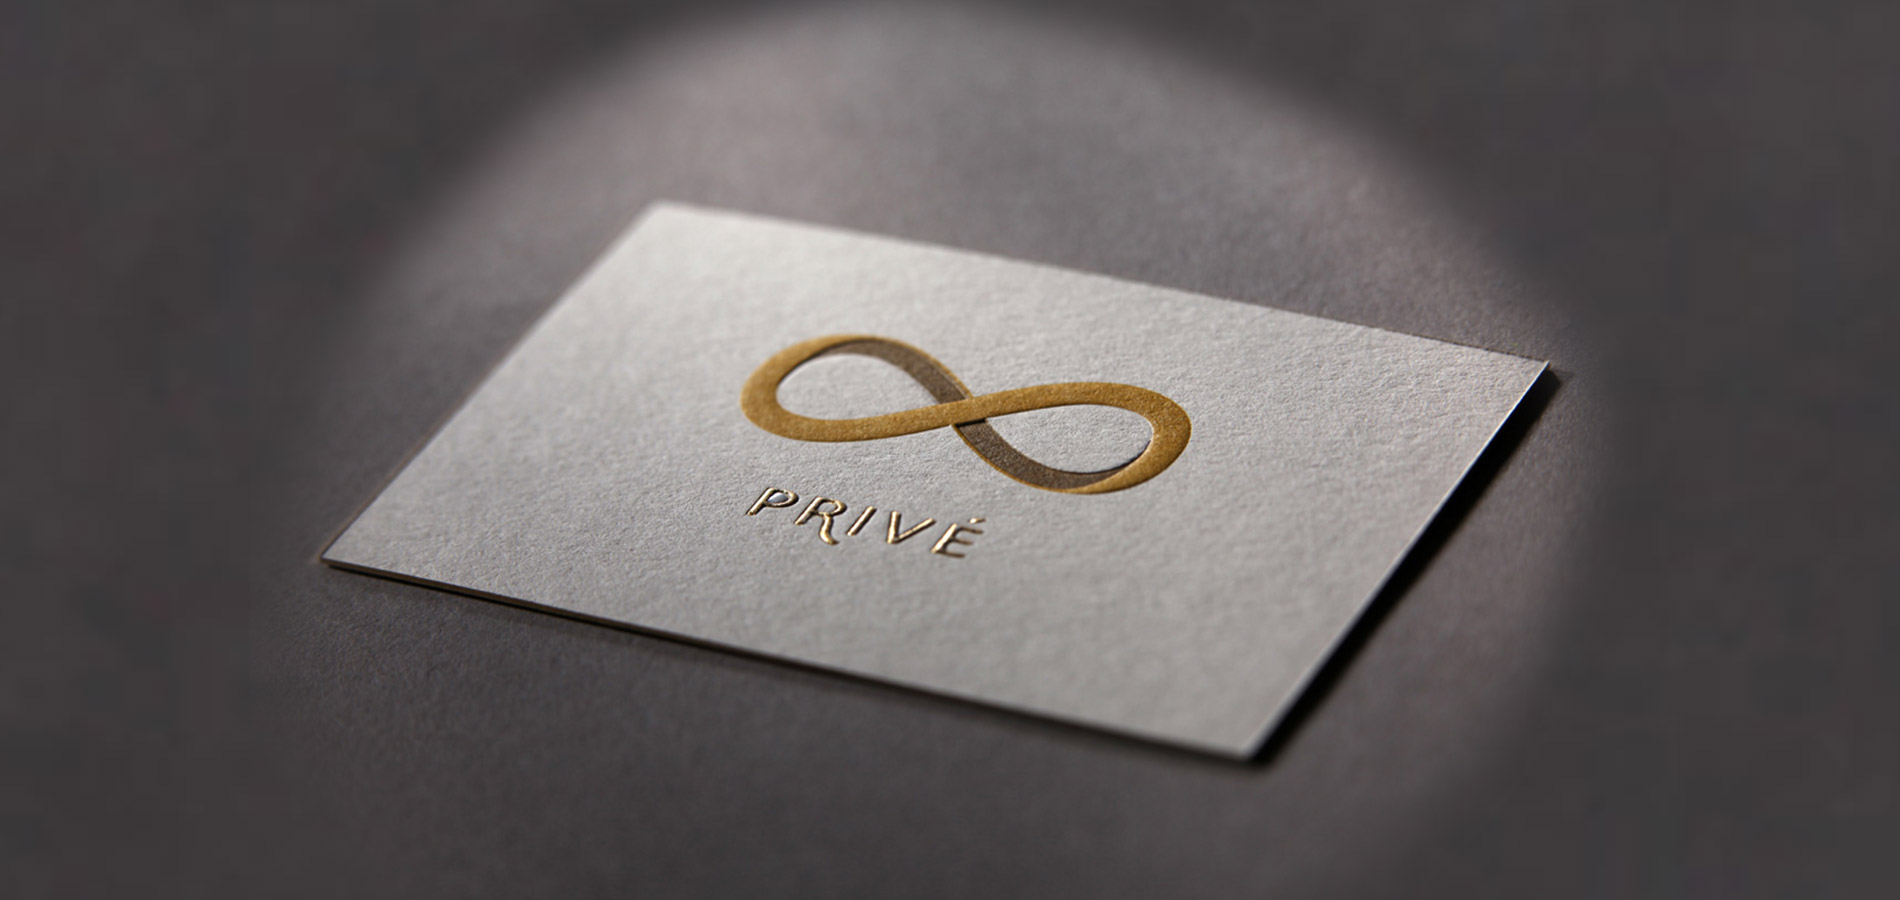 Foil Blocking & Stamping - Foil Embossed Business Cards Coimbatore